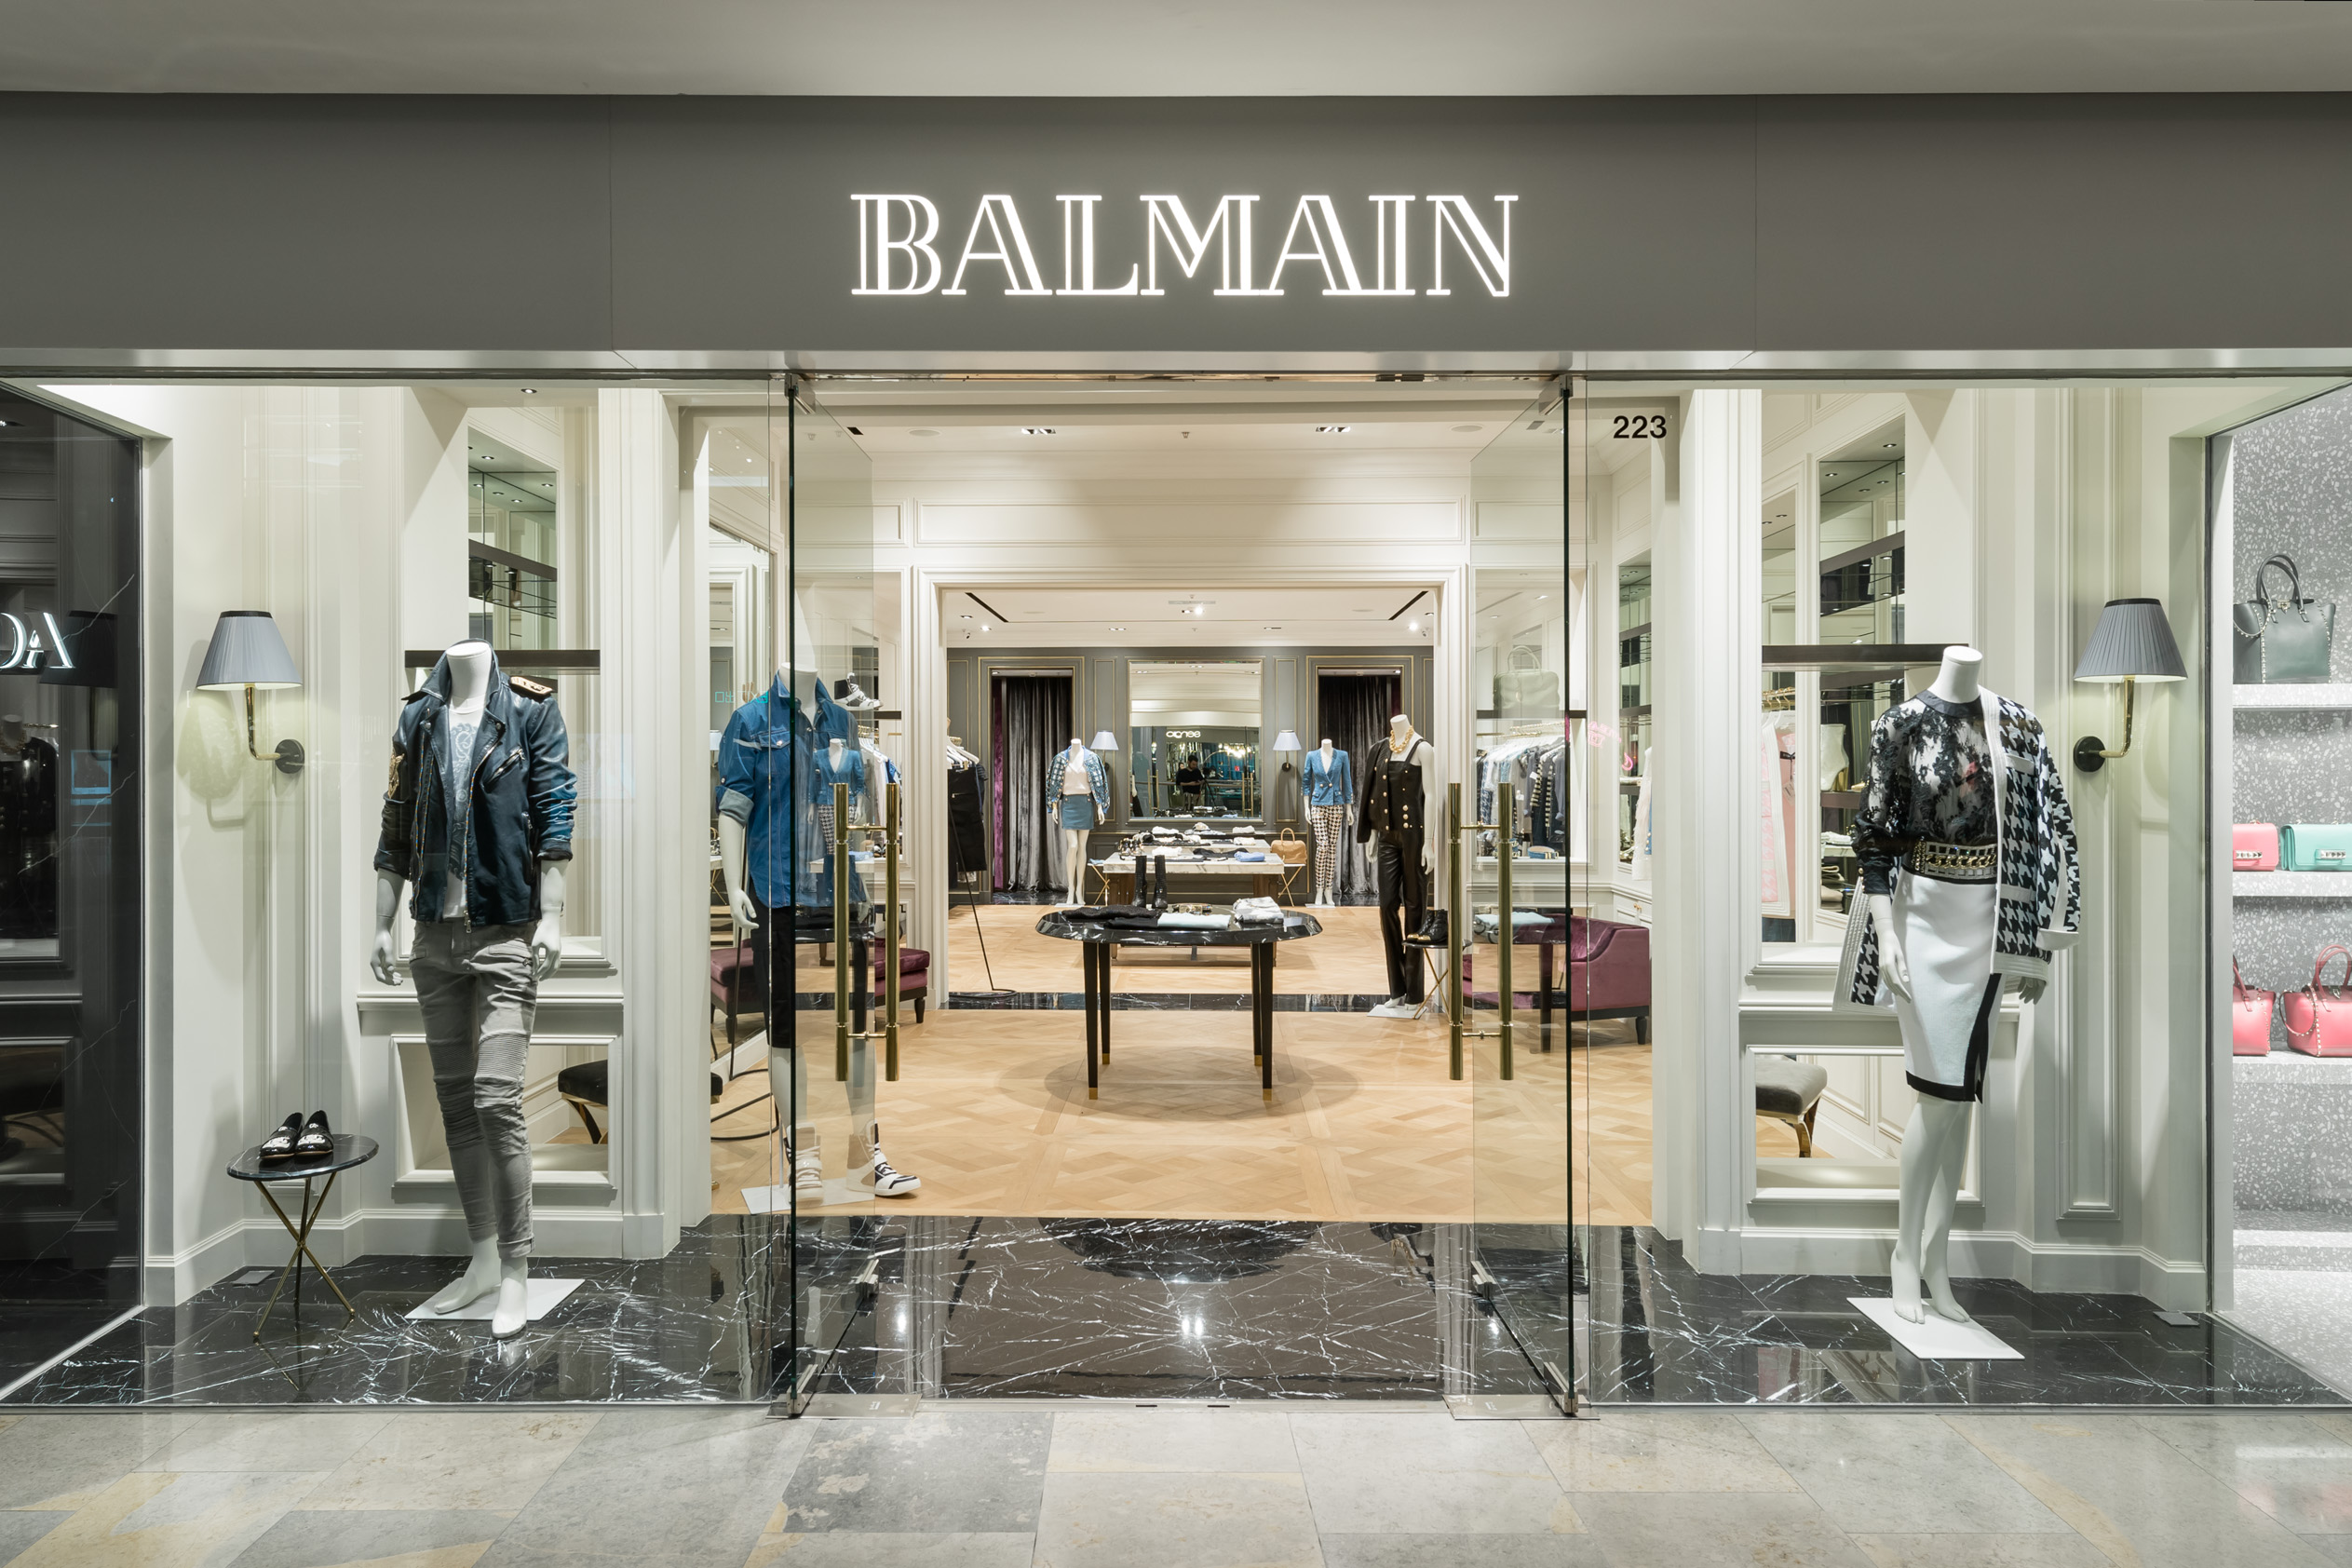 modern designers Get To Know These Amazing Hong Kong Modern Designers! Balmain Store in Pacific Place Hong Kong